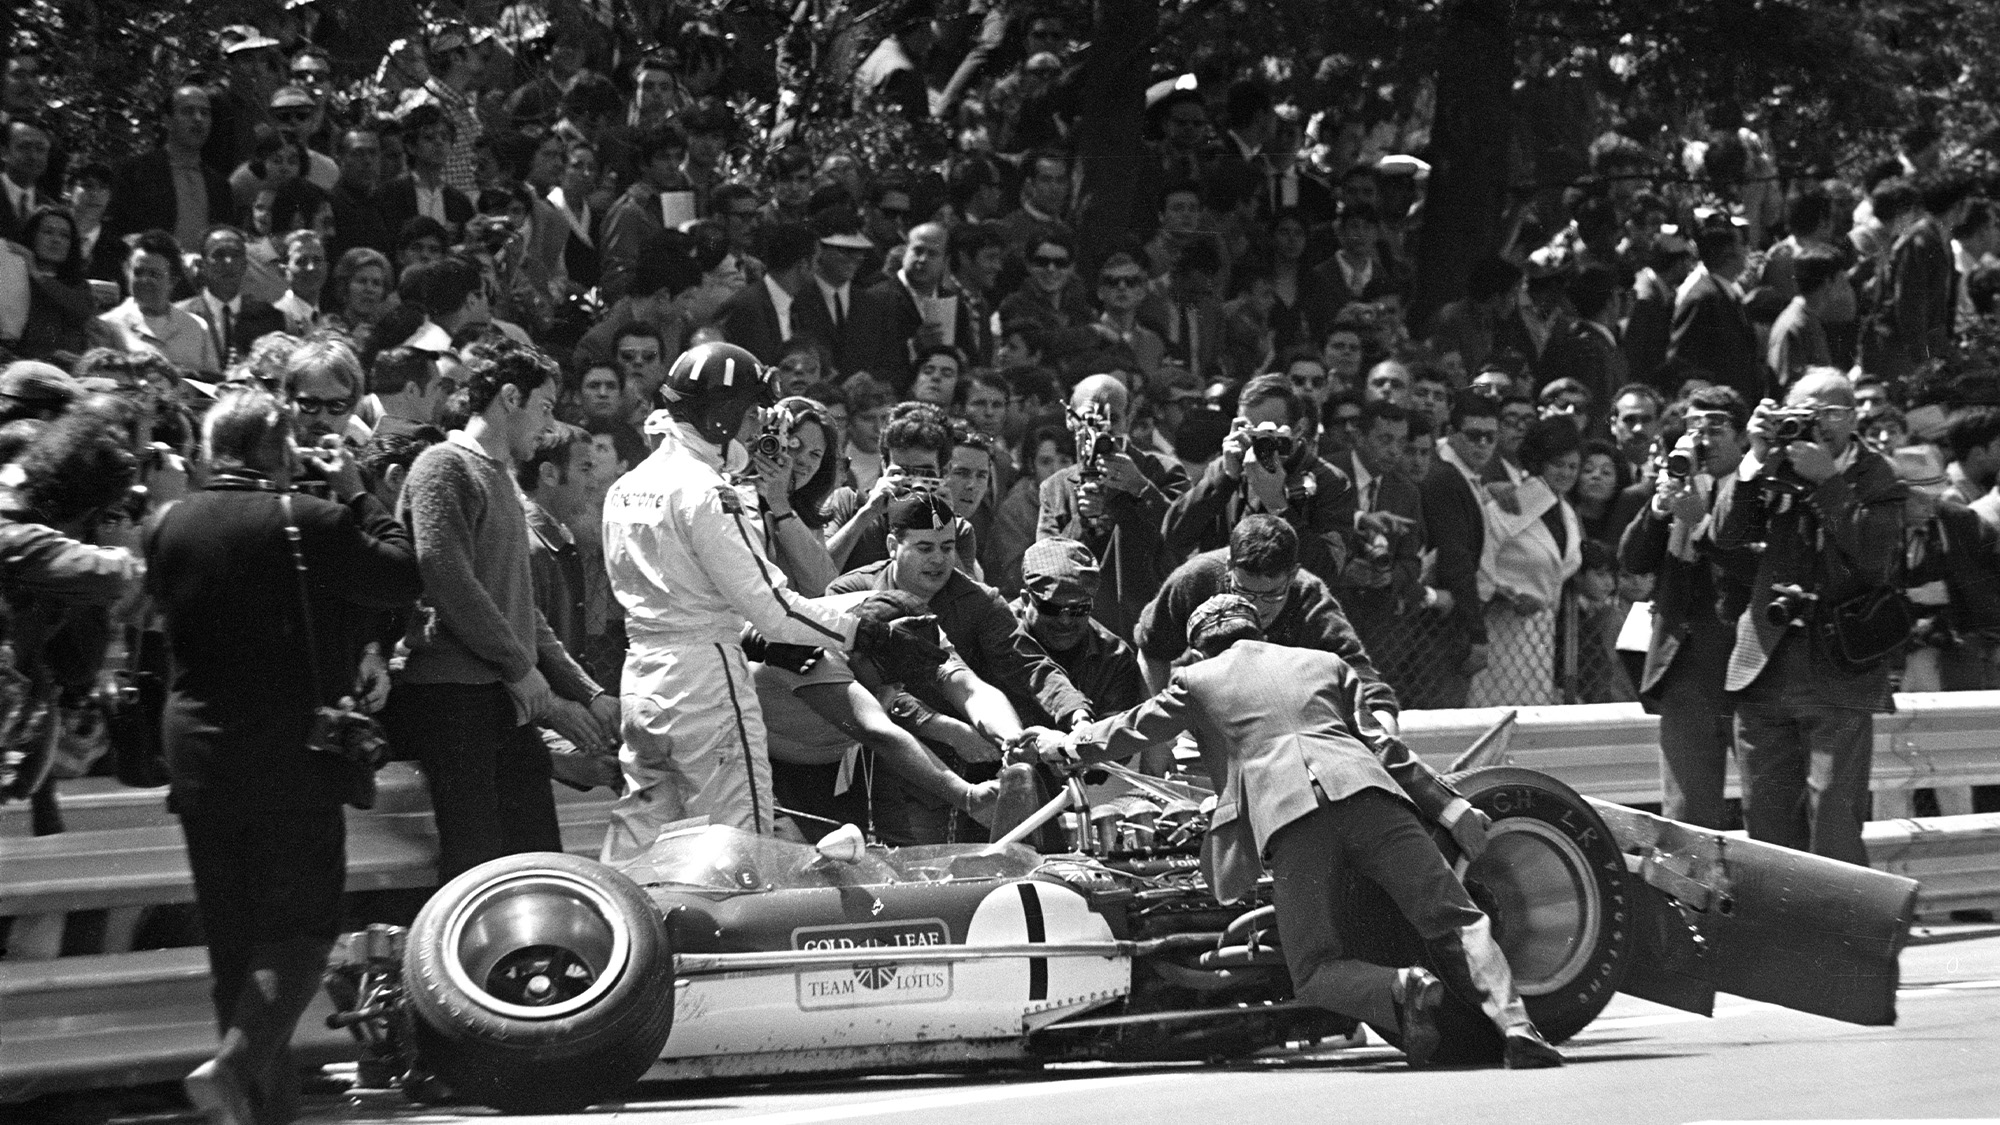 Graham Hill and his crashed Lotus at Montjuich Park in 1969